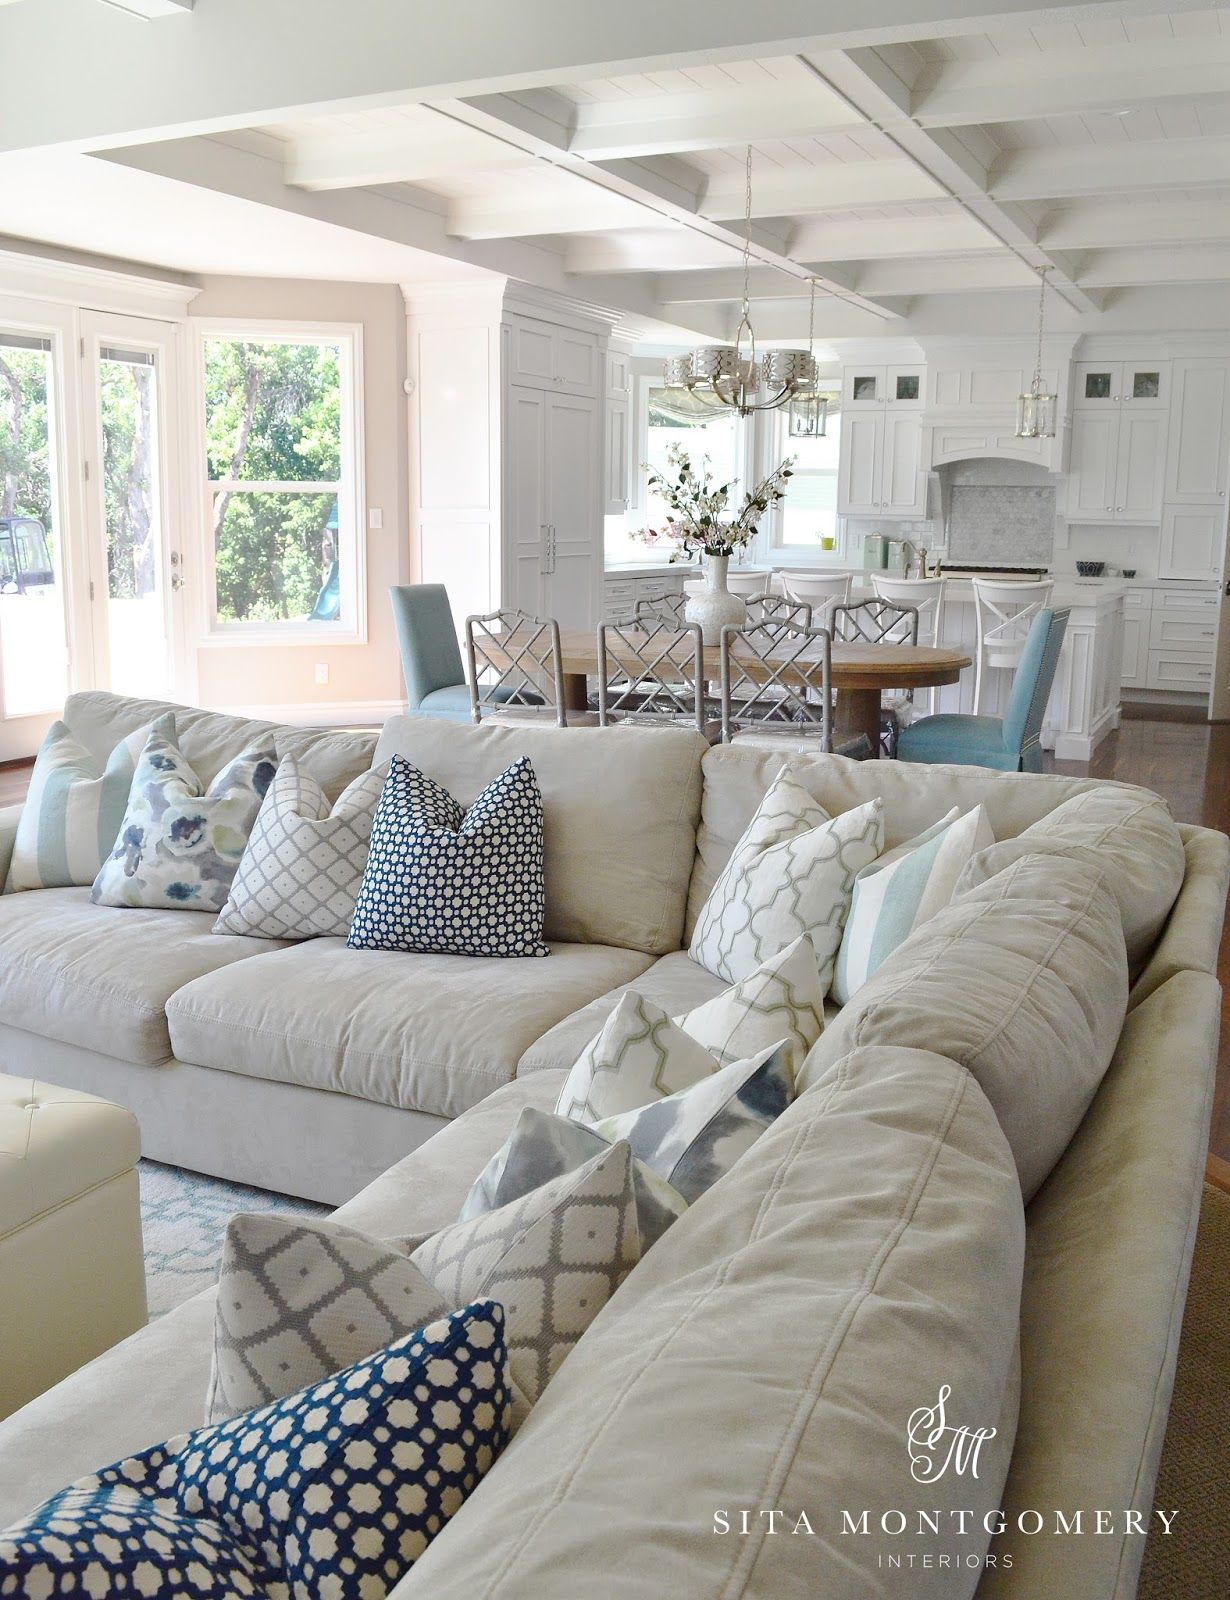 Sita Montgomery Interiors Project Reveal The Rigby Family Room